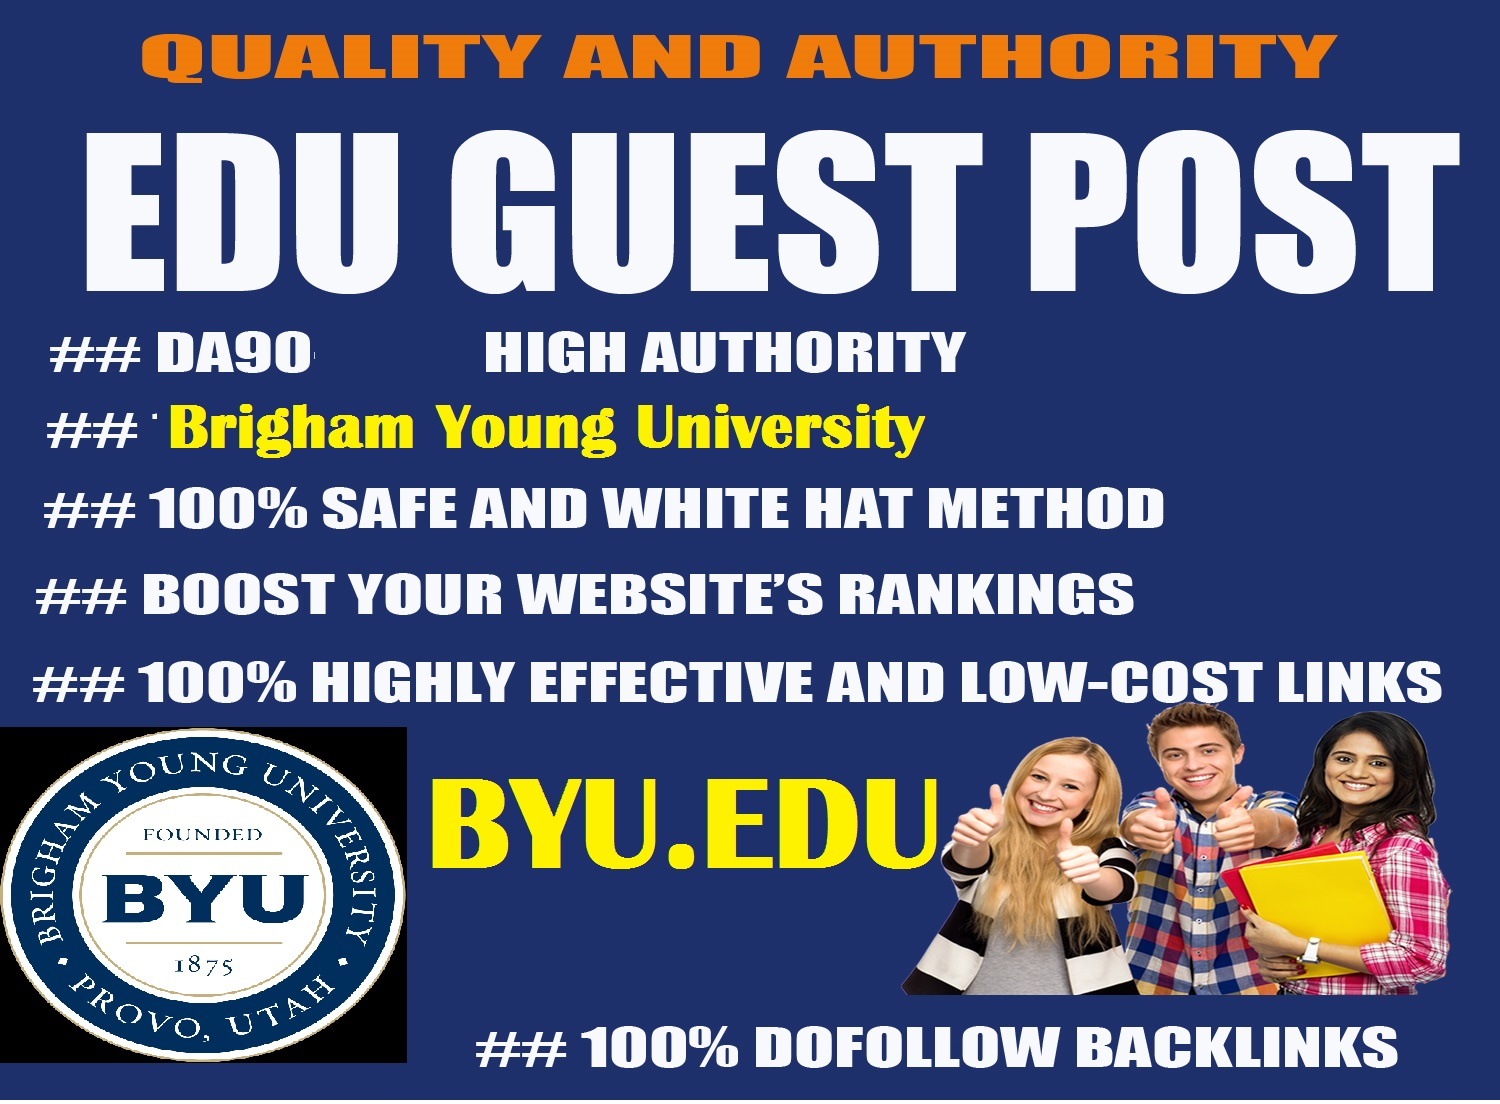 Guest Post on DA90 Brigham Young University,  Byu. edu